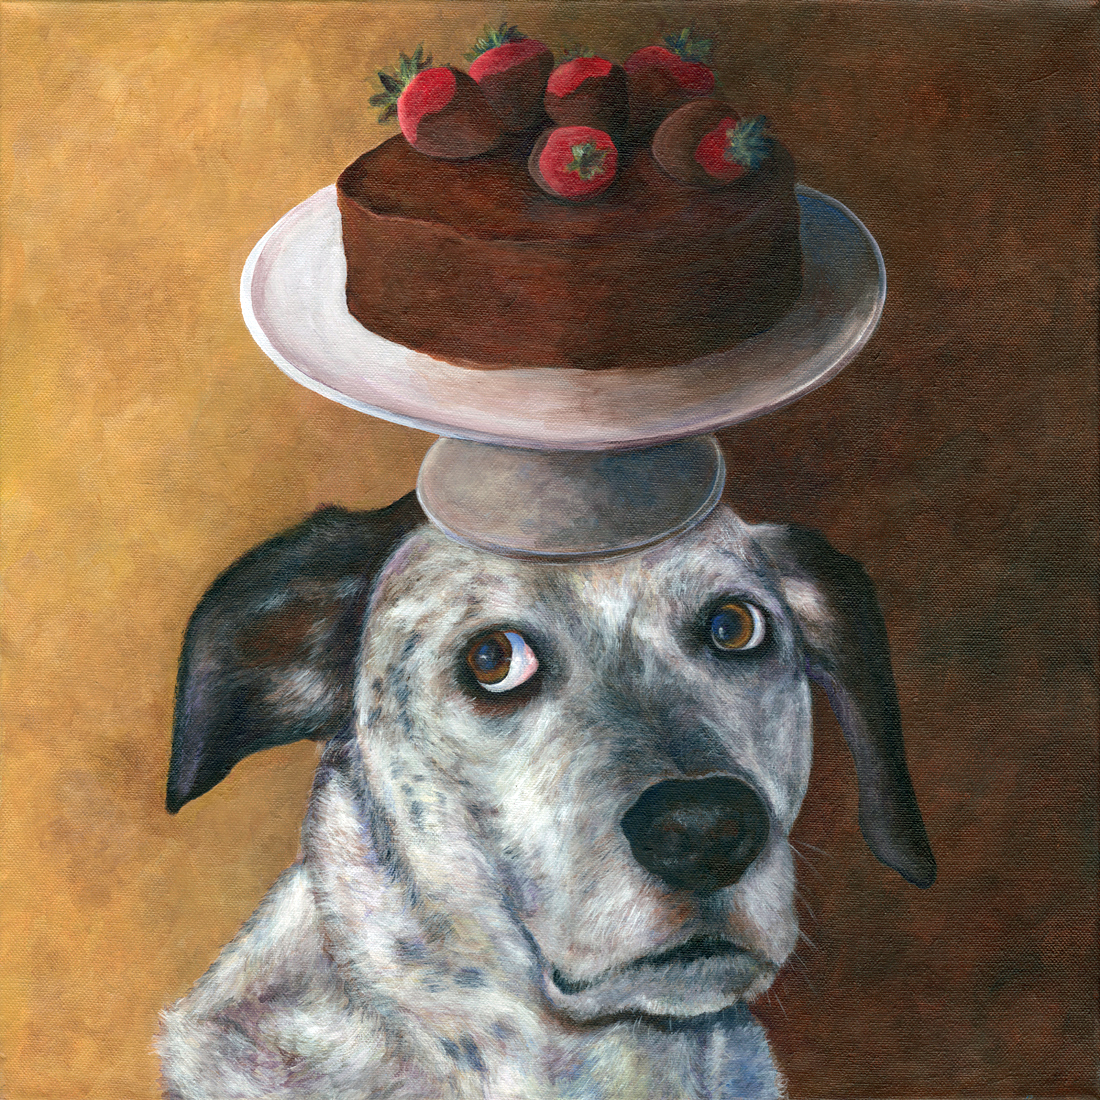 Dog Balancing Cake on her Head